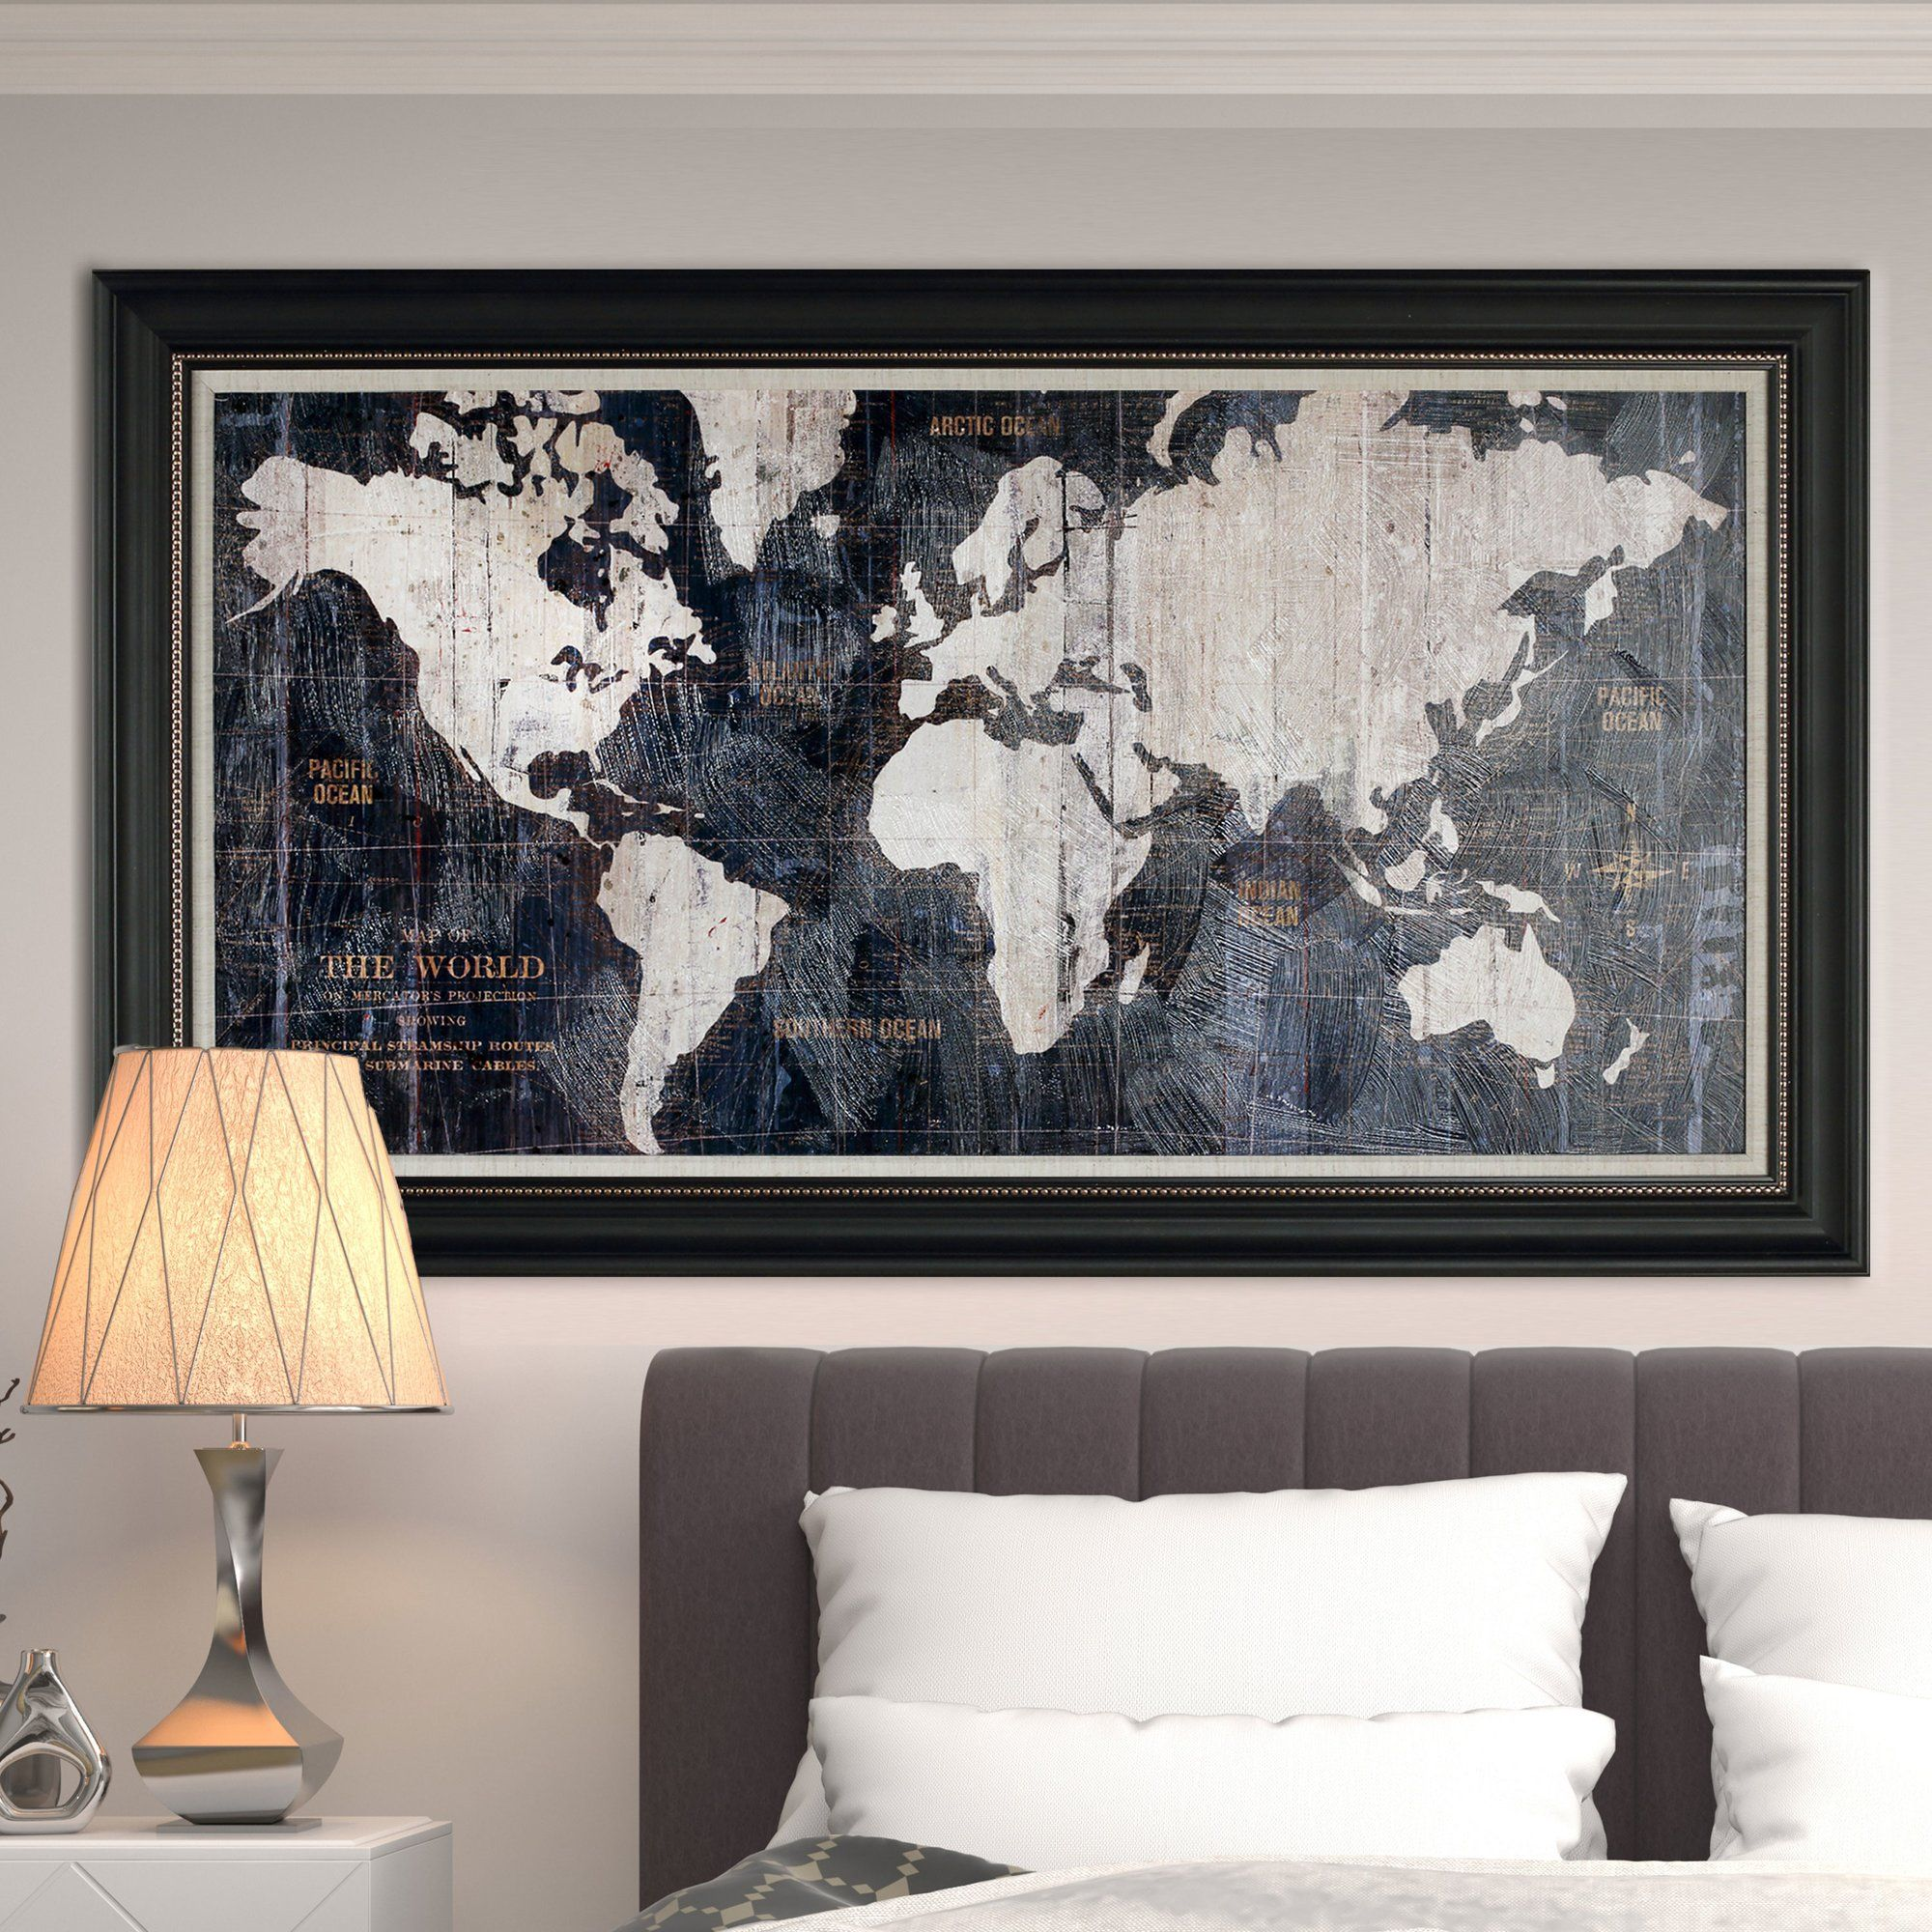 Old world map framed graphic art wall art pinterest map old world map framed graphic art gumiabroncs Gallery